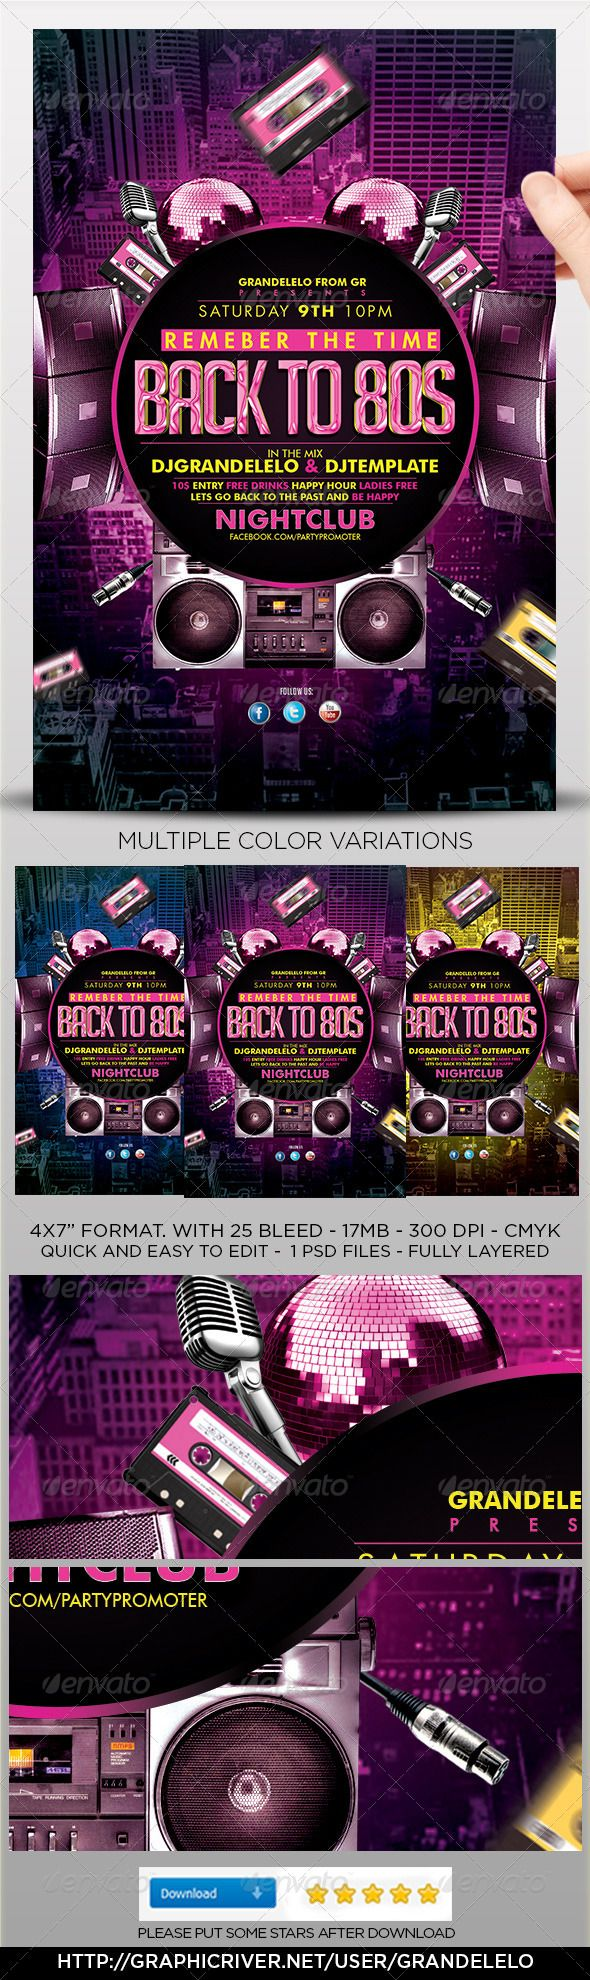 70s poster design template - Flash Back 80s Flyer Template